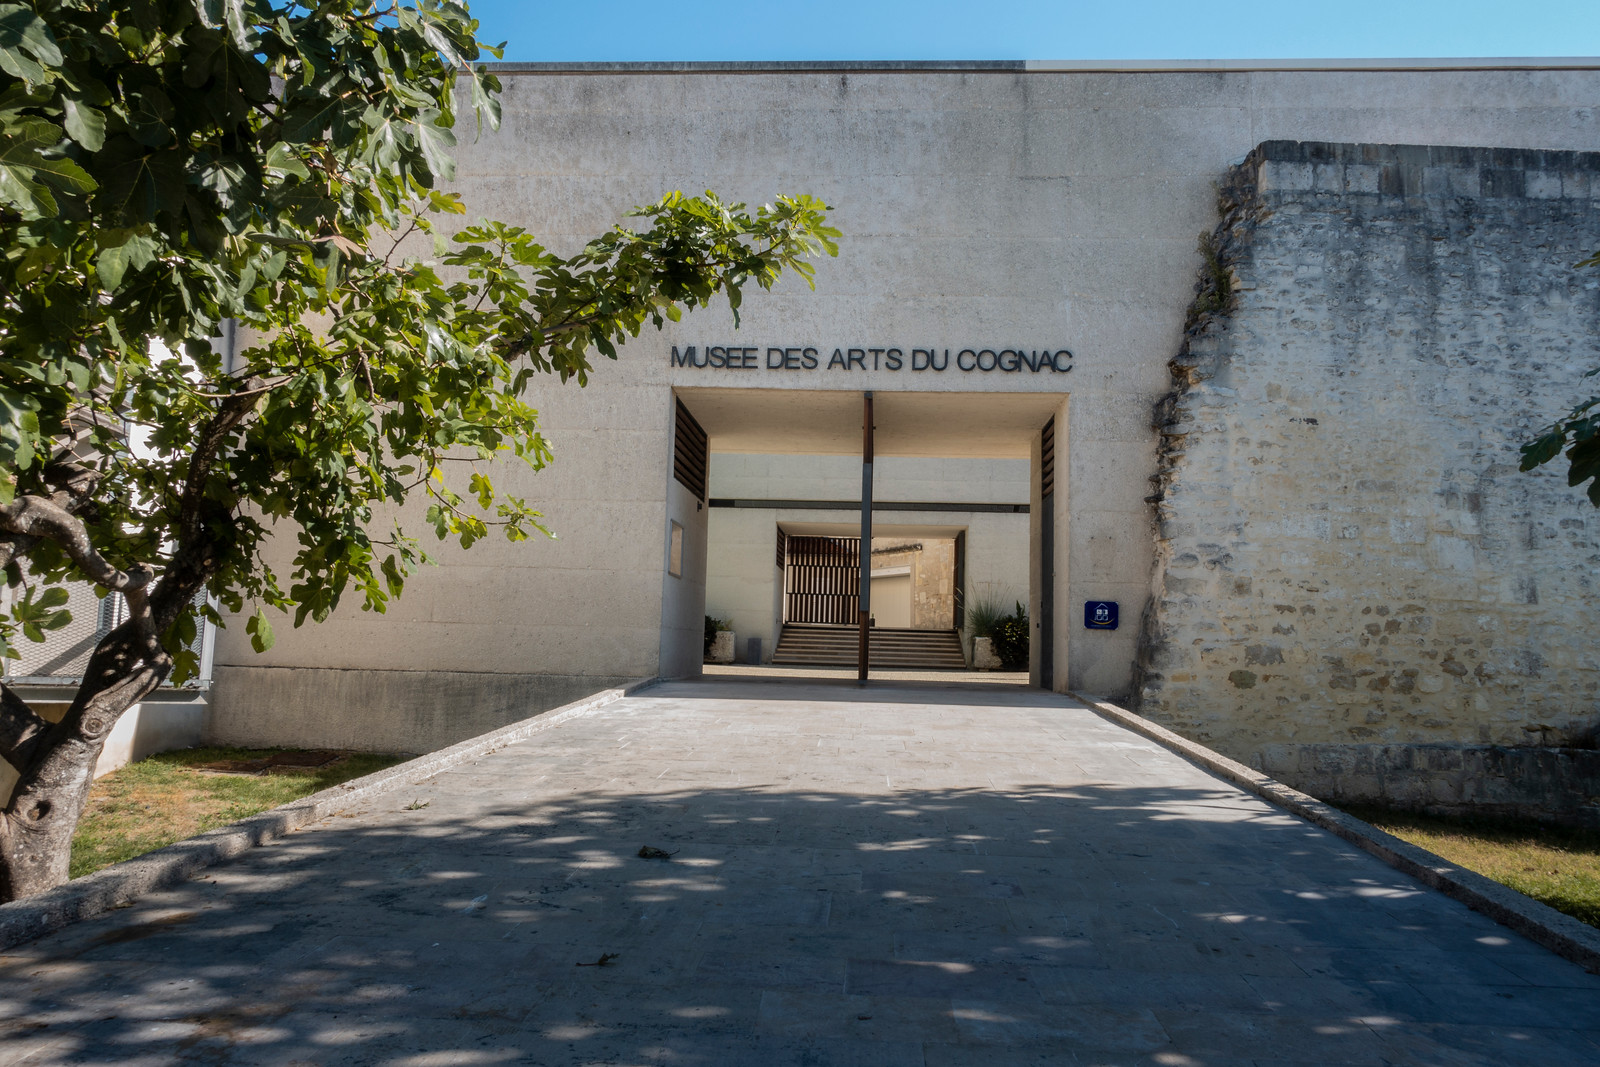 Sunny entrance into the museum of Cognac shaded by green trees